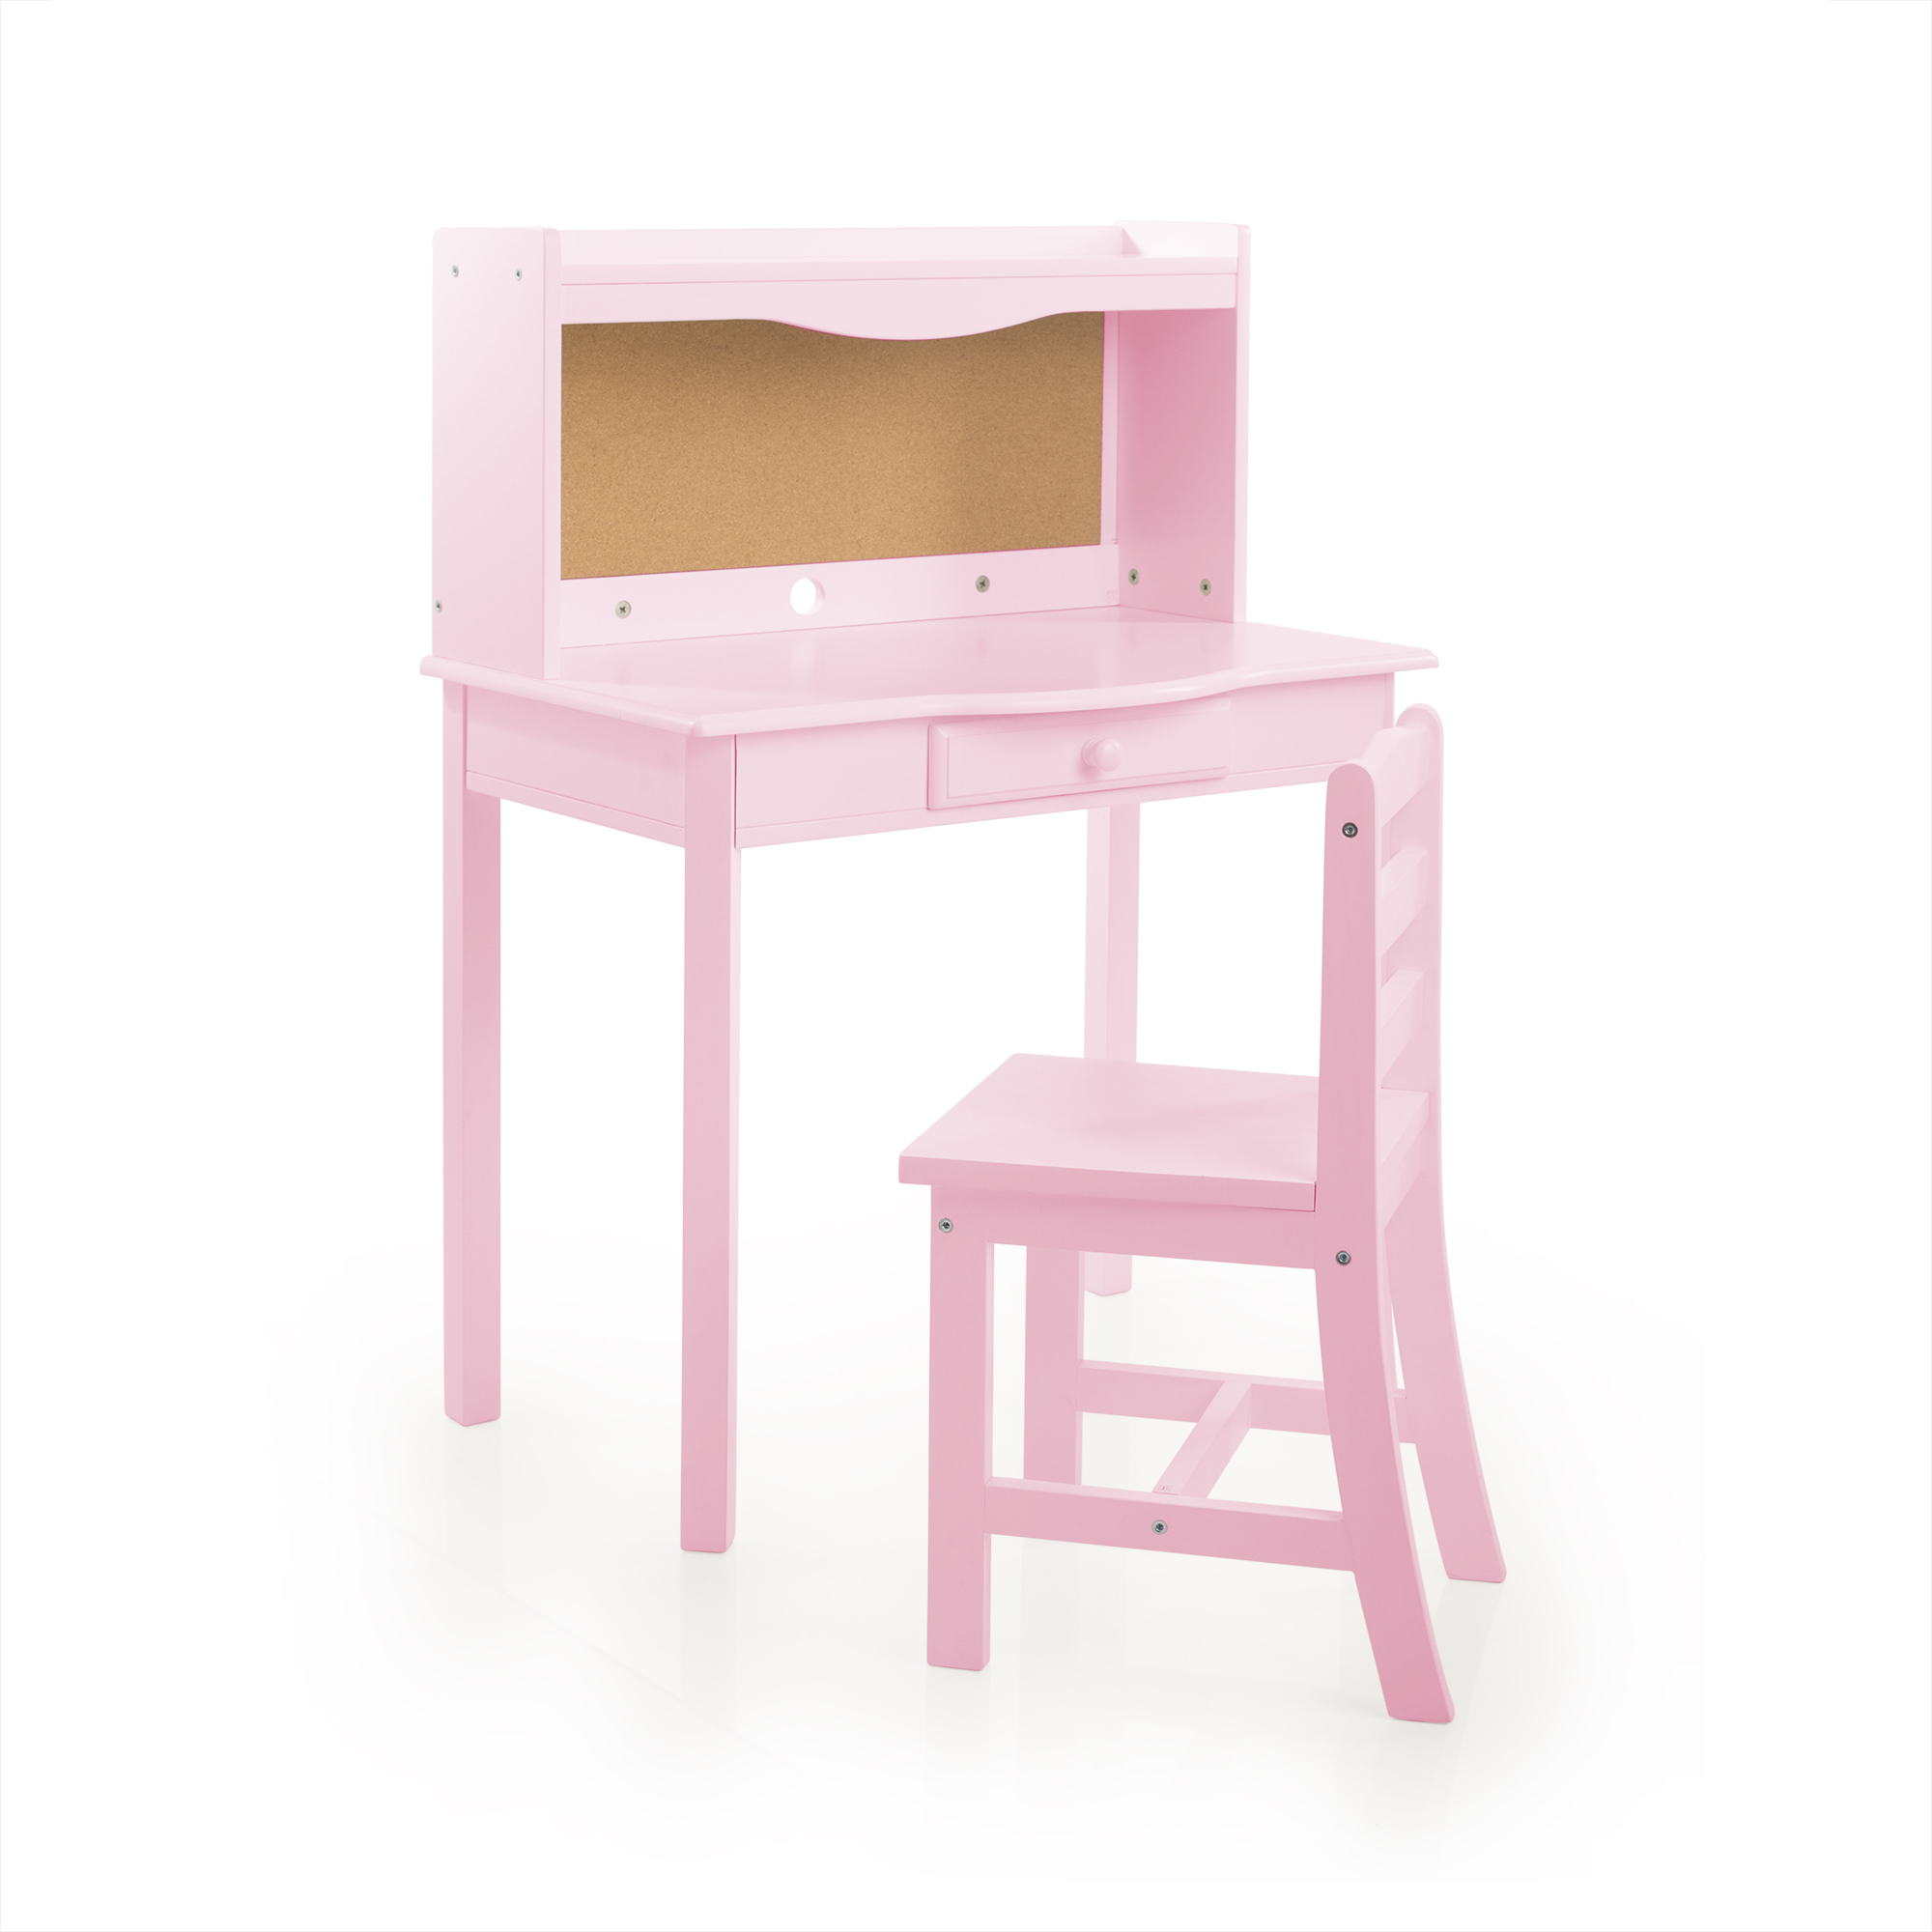 Charmant Guidecraft Classic Kids Desk With Chair, Corkboard, And Drawer